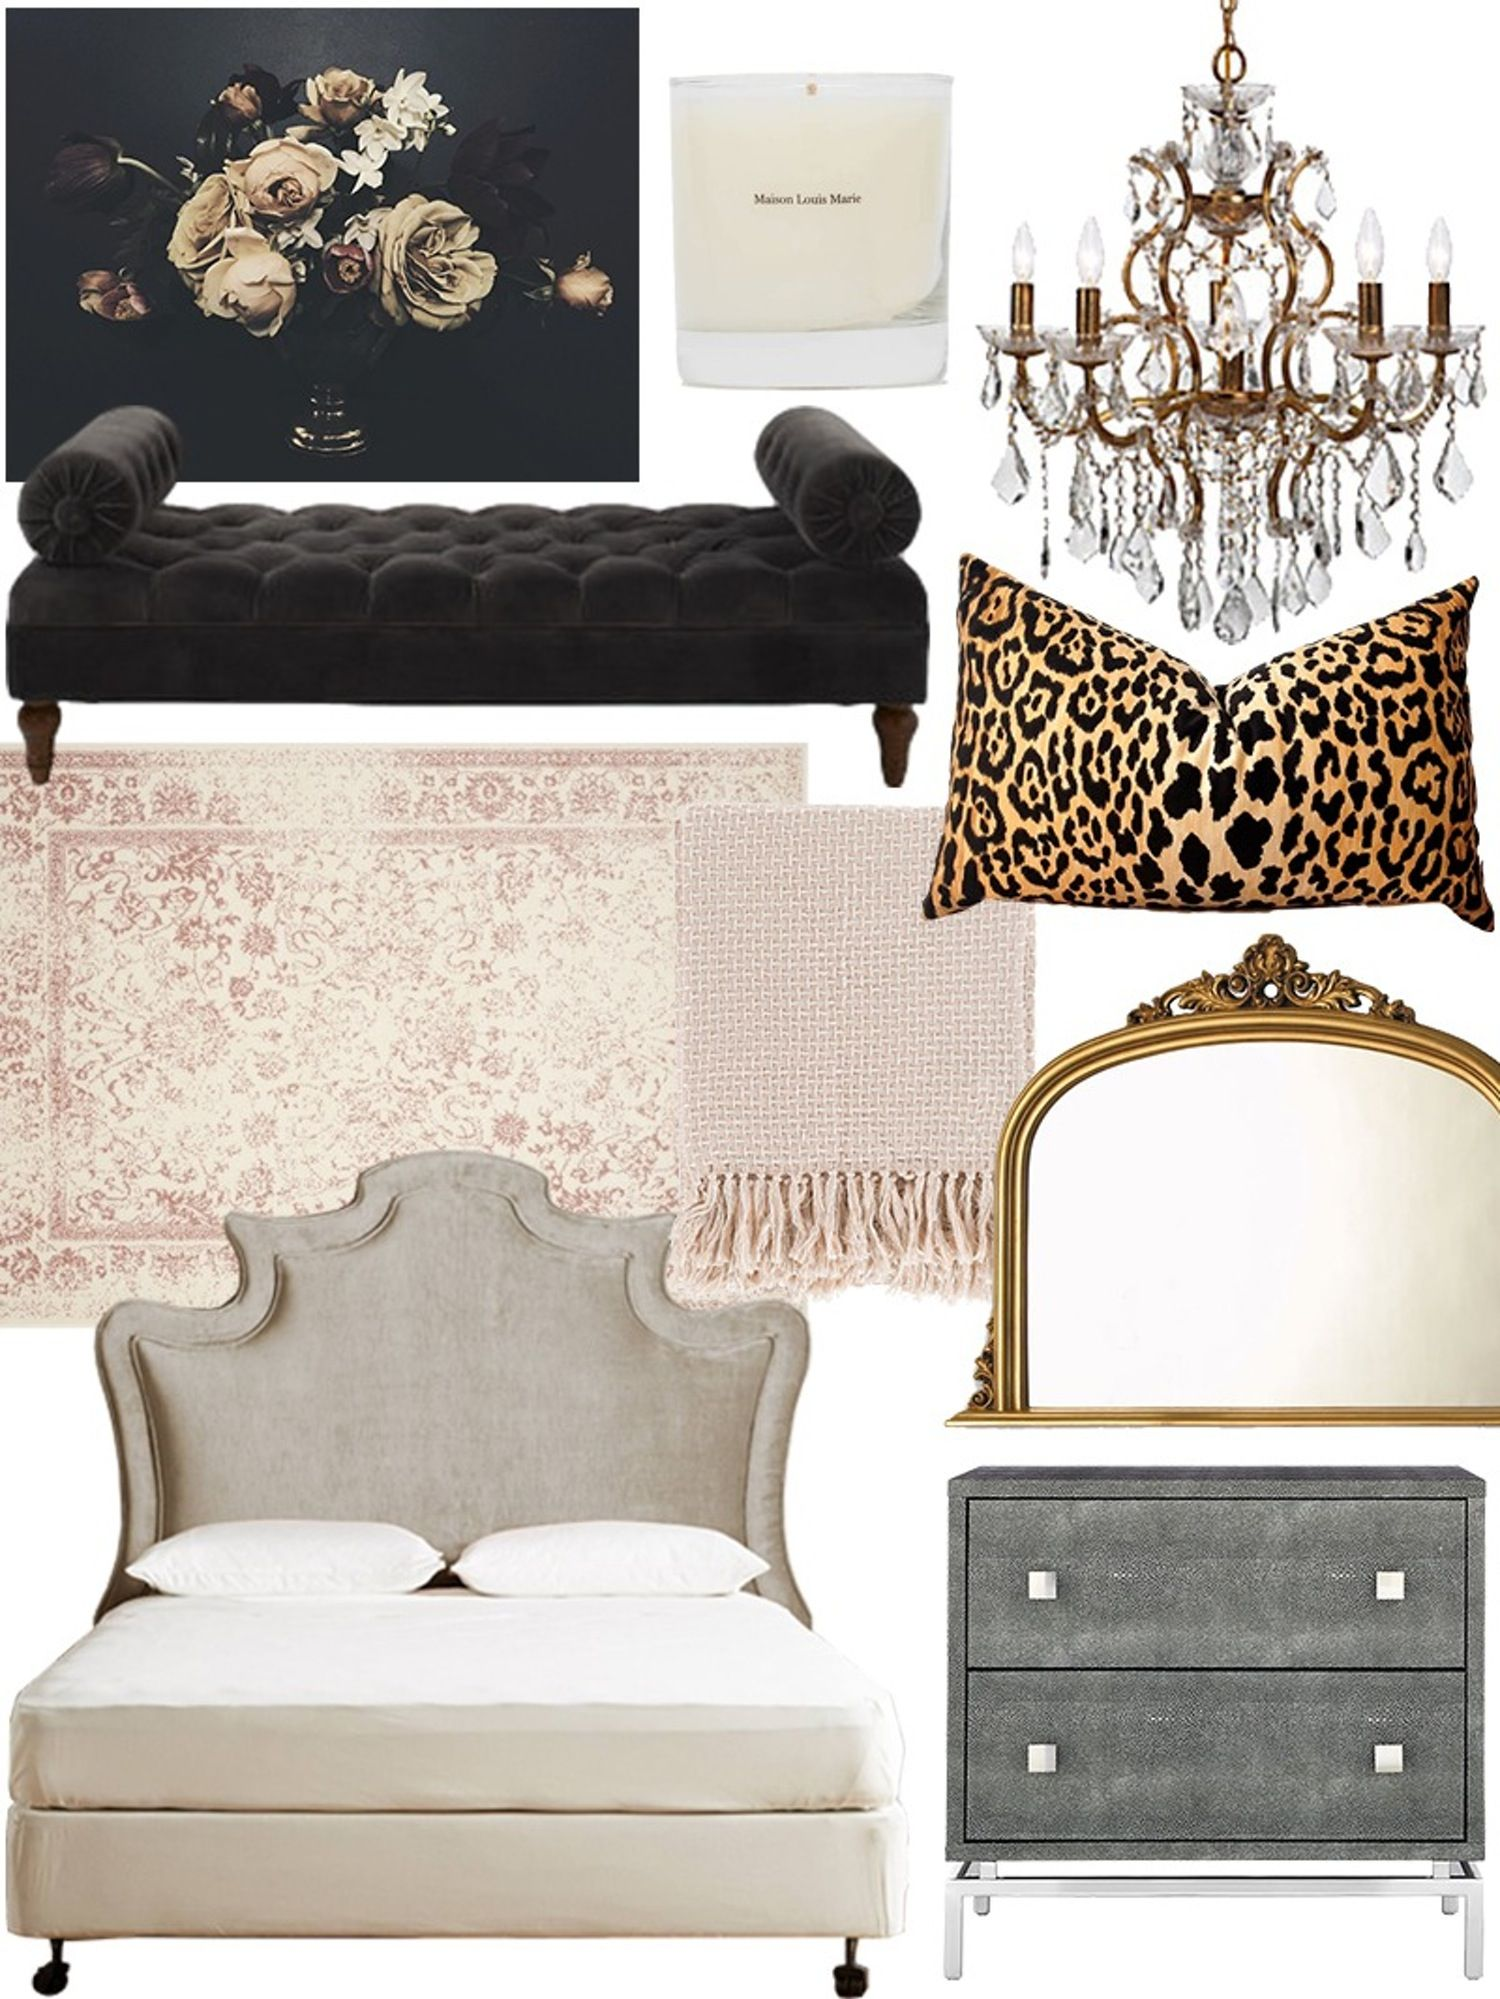 Create the Look: Classic Glam Bedroom Shopping Guide